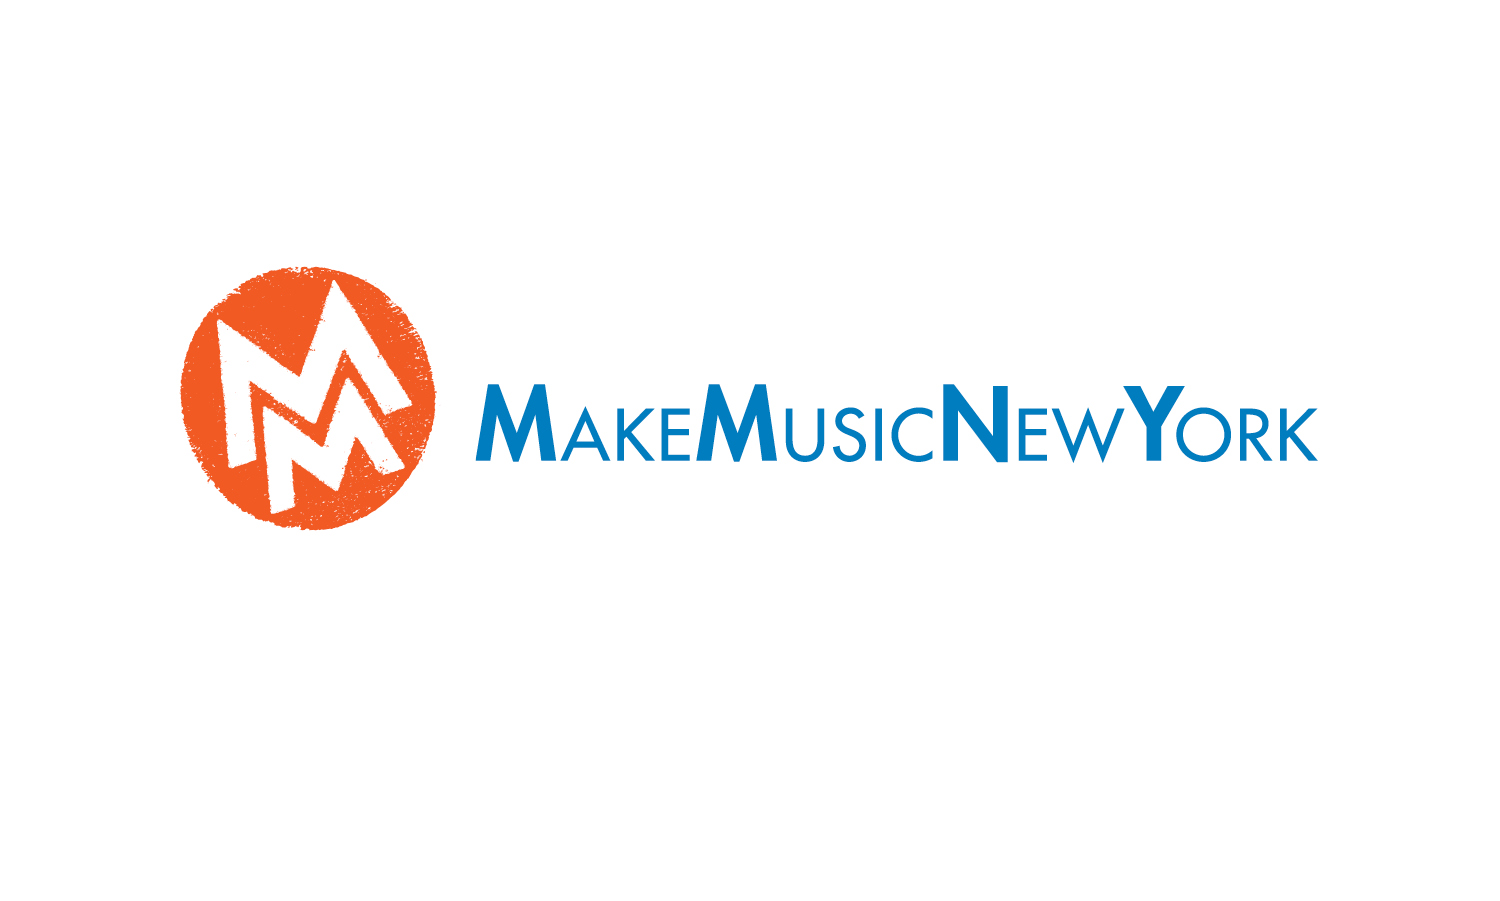 Make Music New York logo